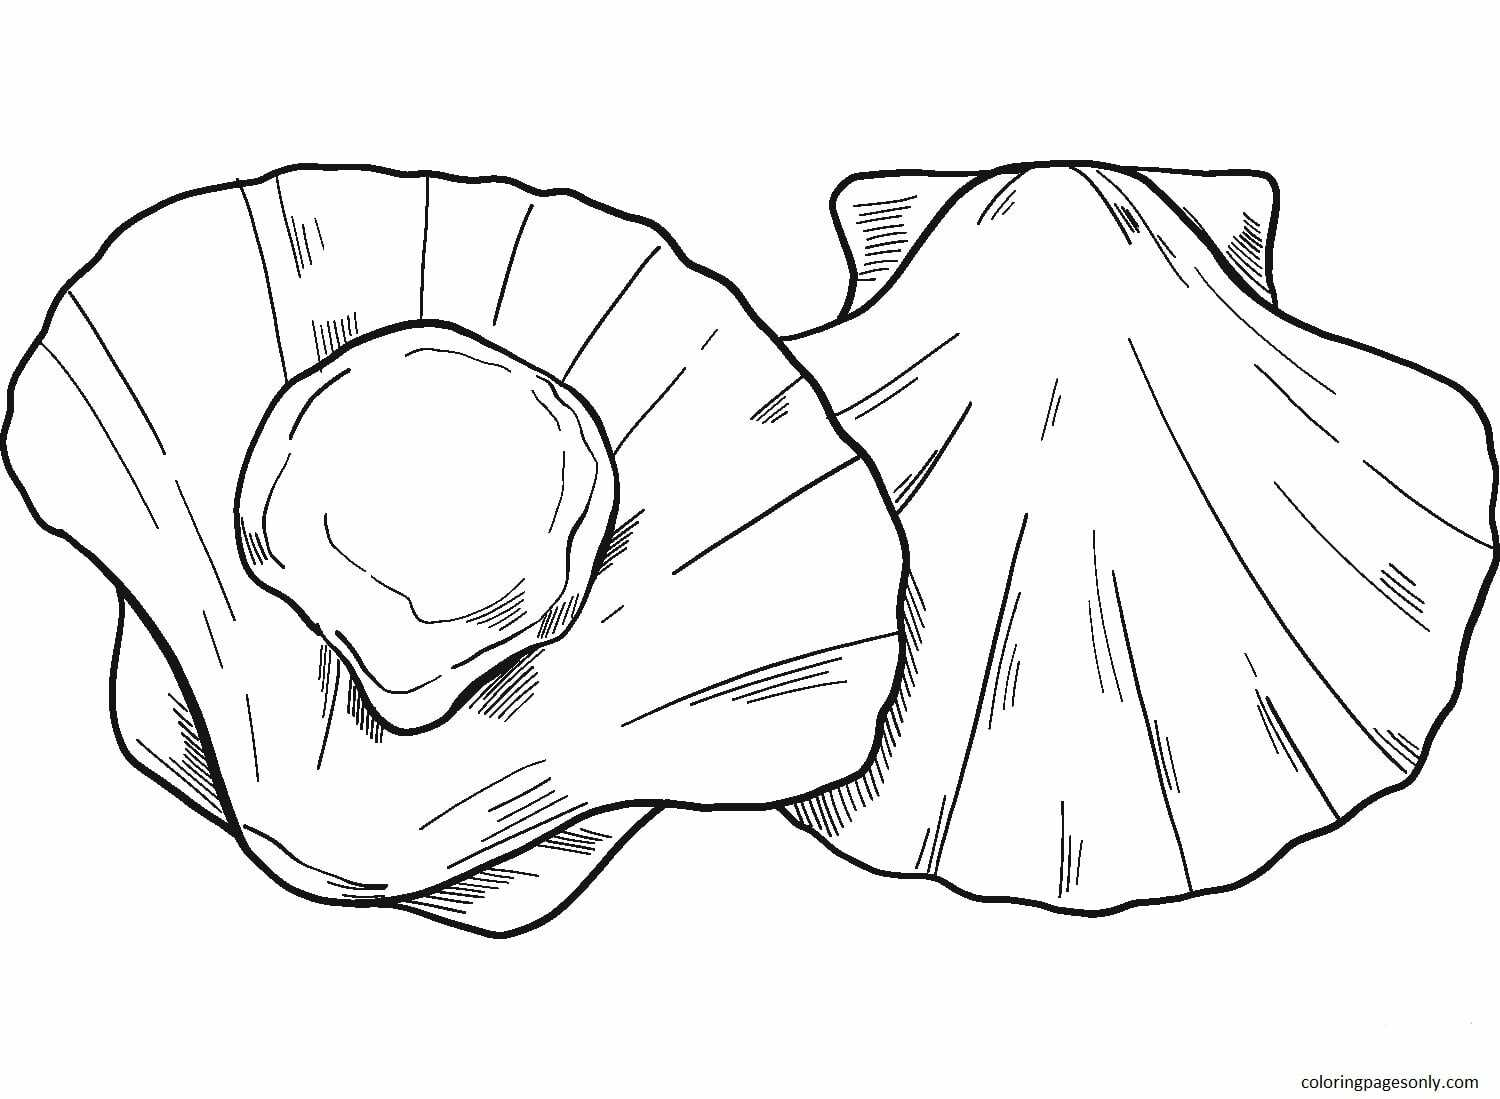 Seafood Coloring Page